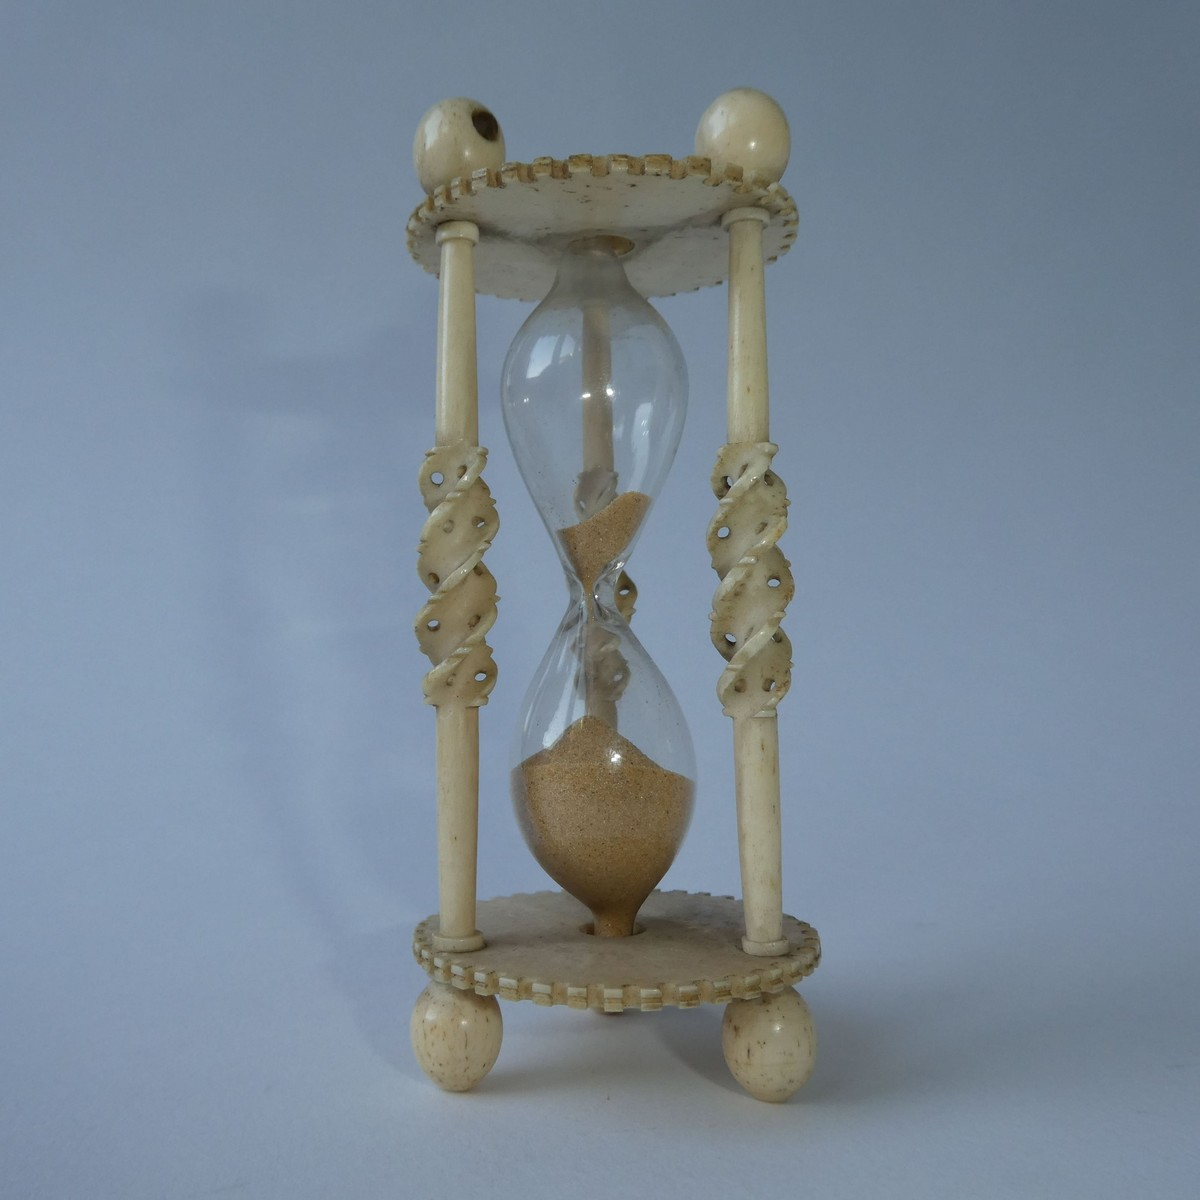 'FRENCH PRISONER OF WAR' BONE SANDGLASS